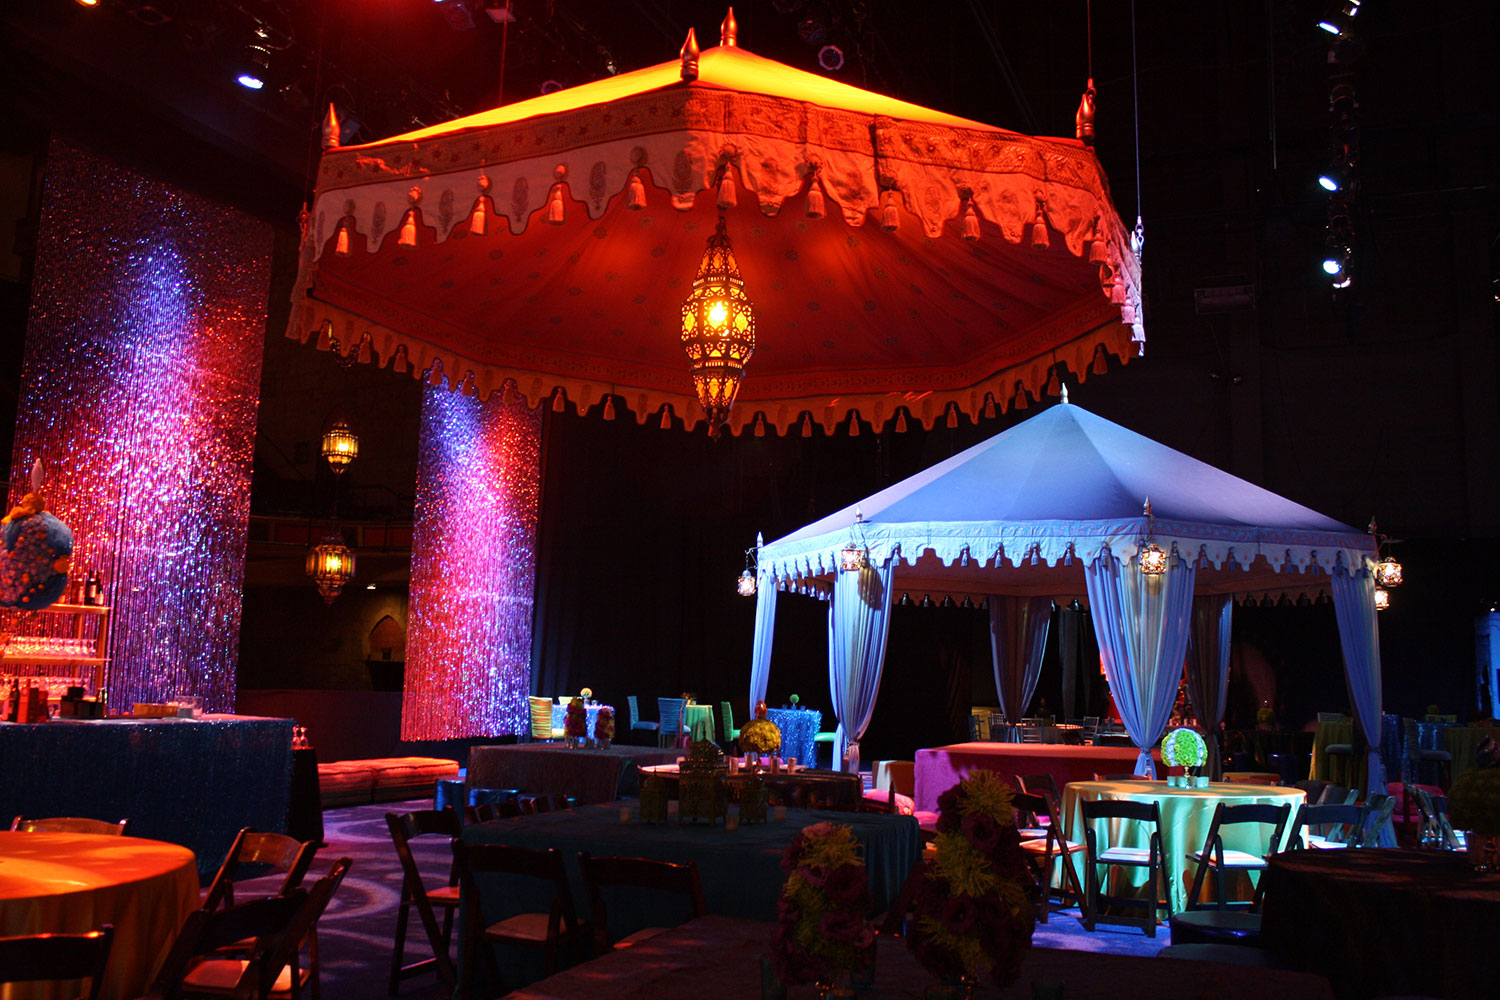 raj-tents-moroccan-theme-floating-canopies.jpg